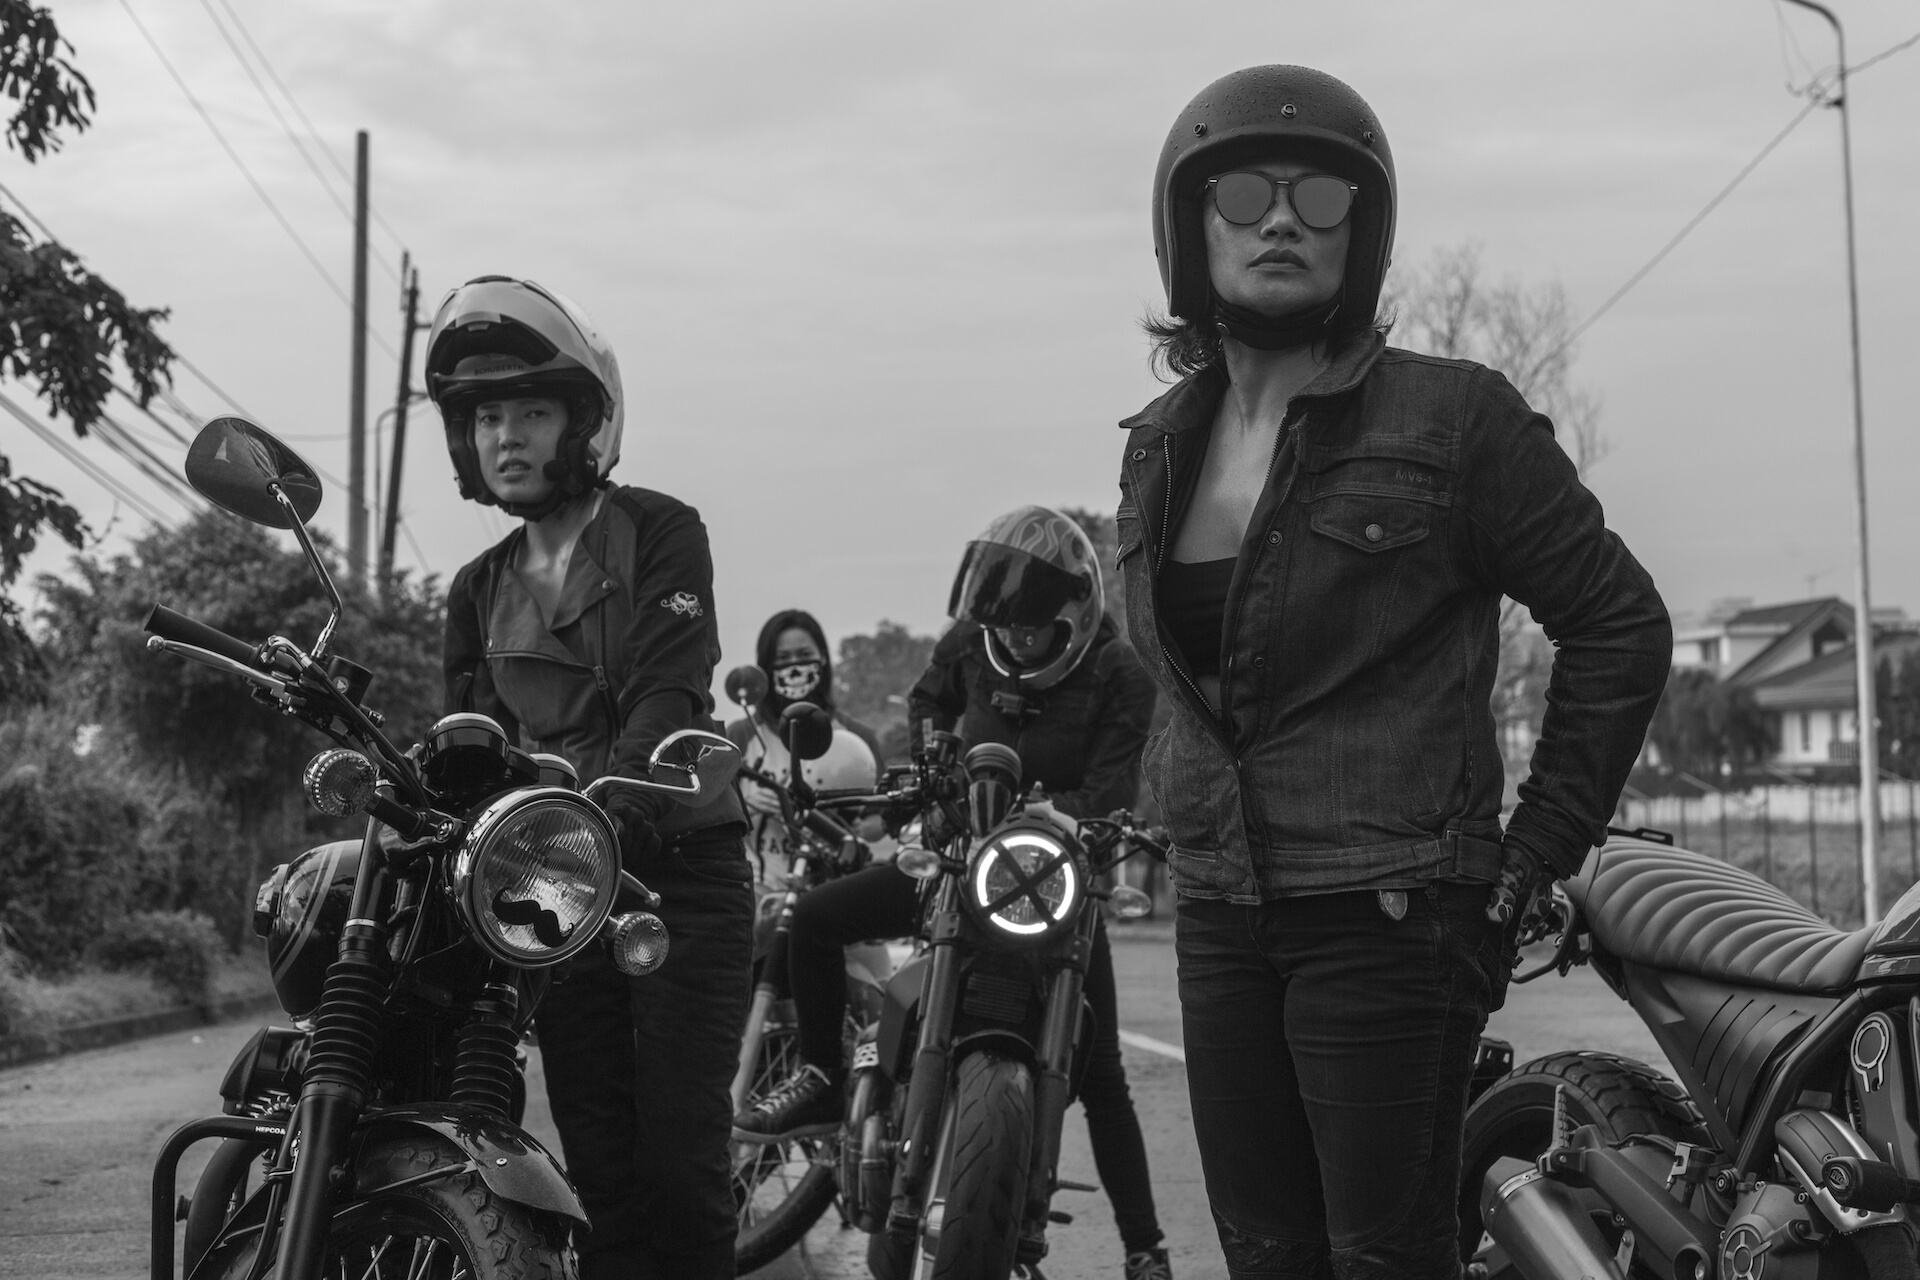 The Litas break motorbike stereotypes and show us how they ride.